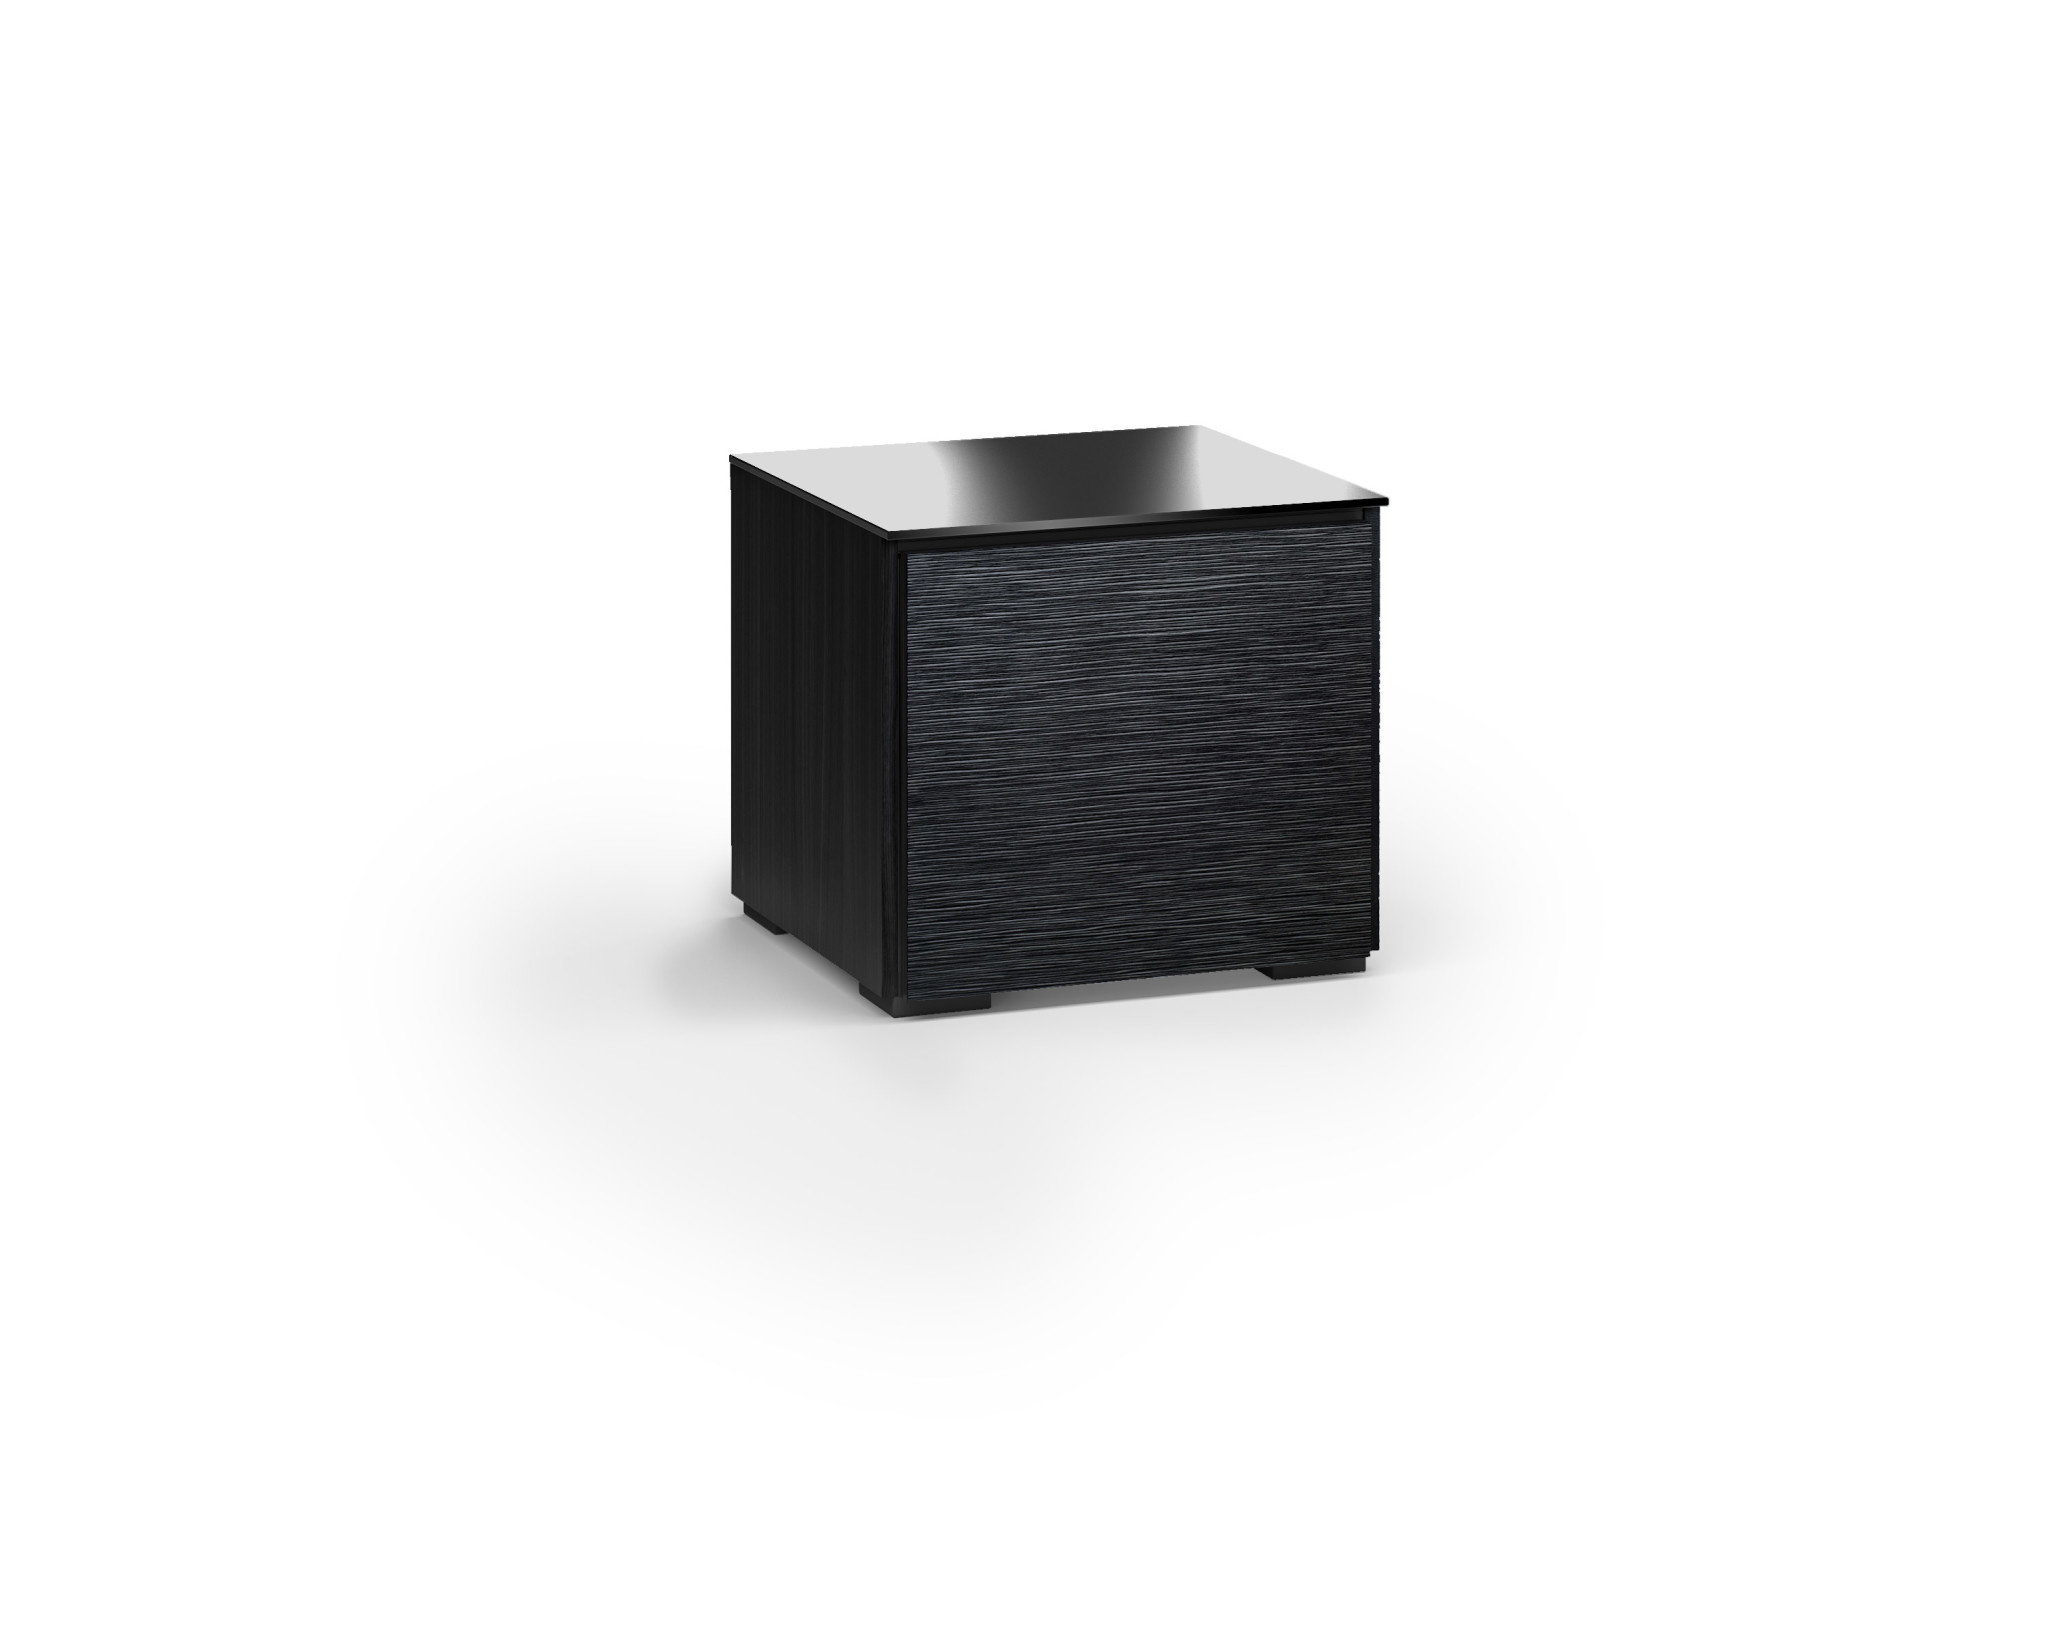 Salamander Designs Chicago 217 SE, AV Cabinet, Black Oak